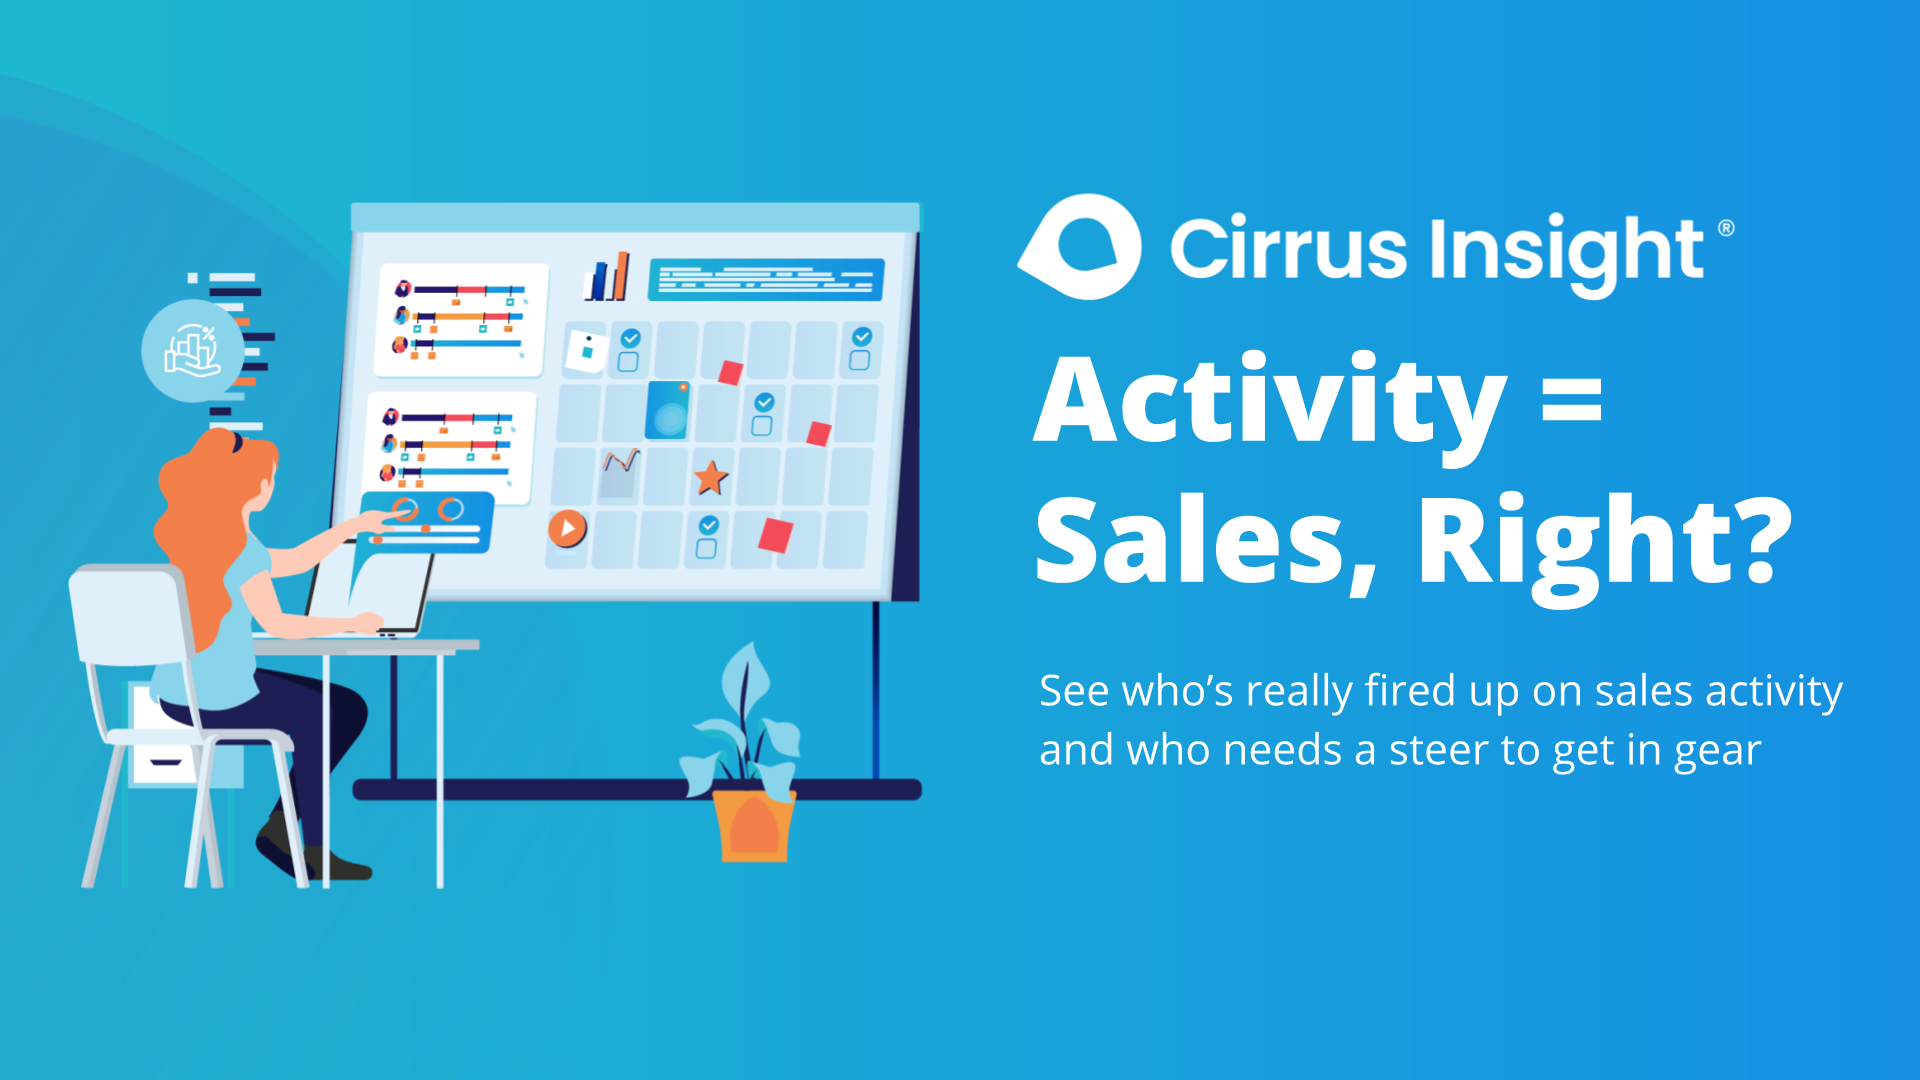 140_Activity = Sales, Right__ Supercharge Sales Activity-Cirrus Insight Microsite